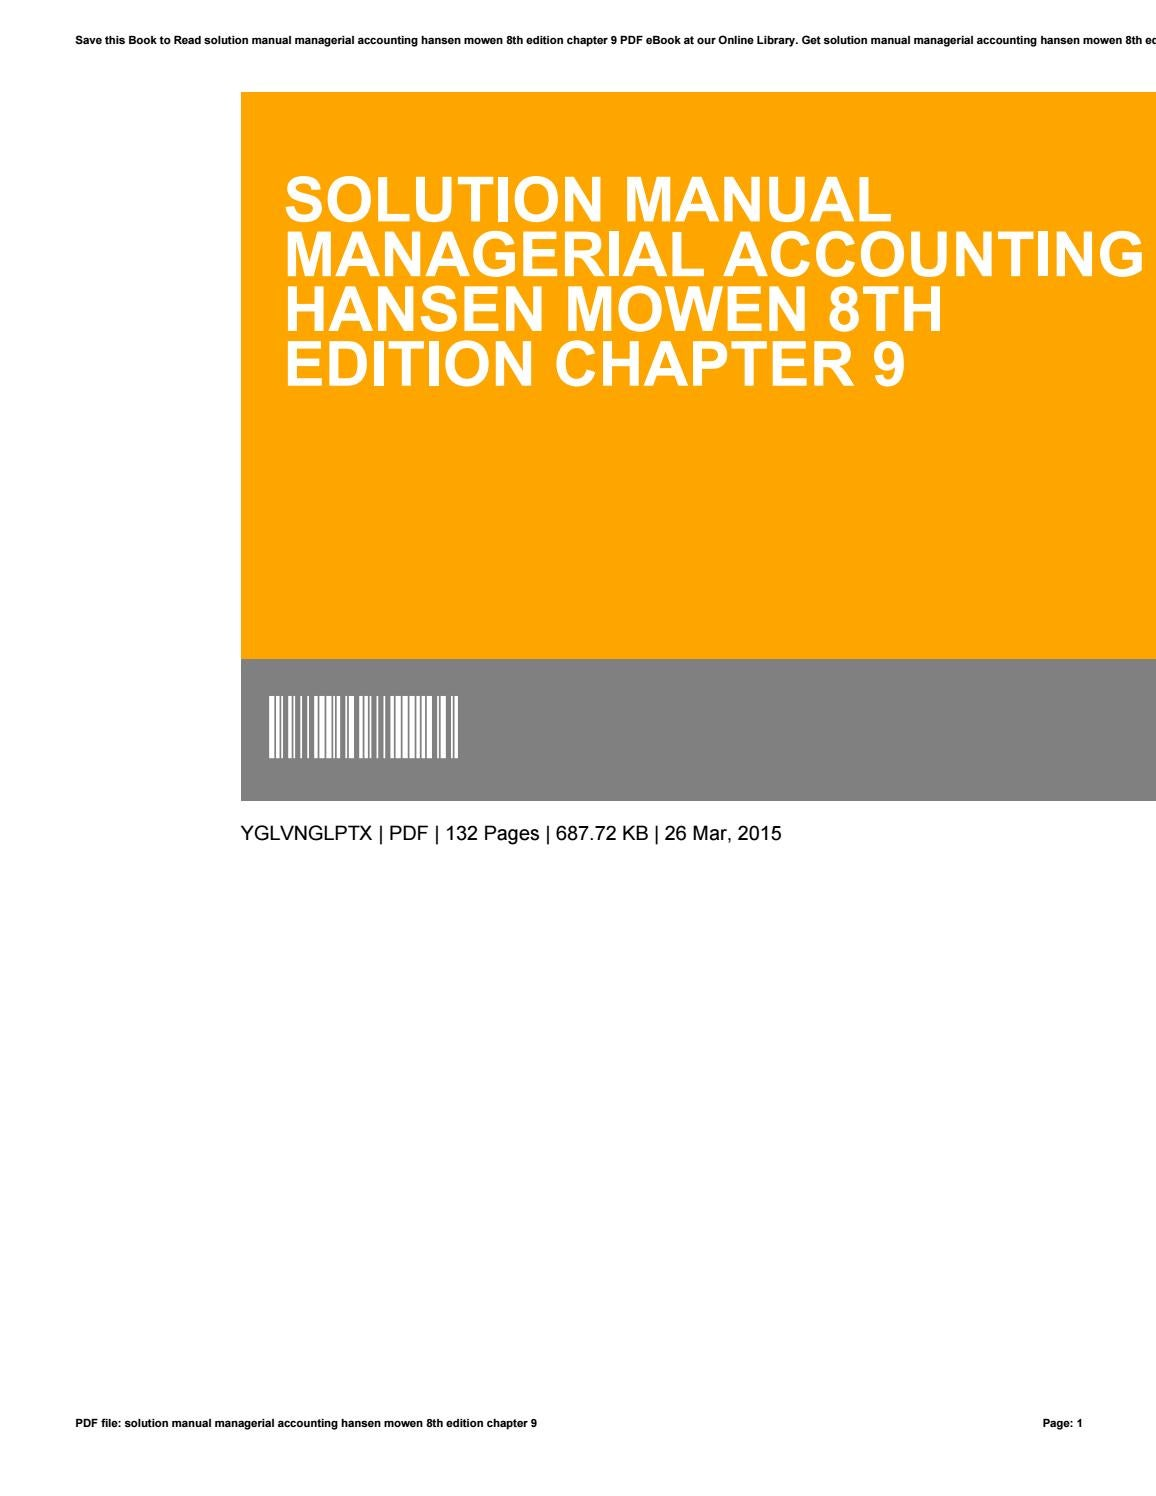 Solution manual managerial accounting hansen mowen 8th edition chapter 9 by  VirginiaSmith3750 - issuu